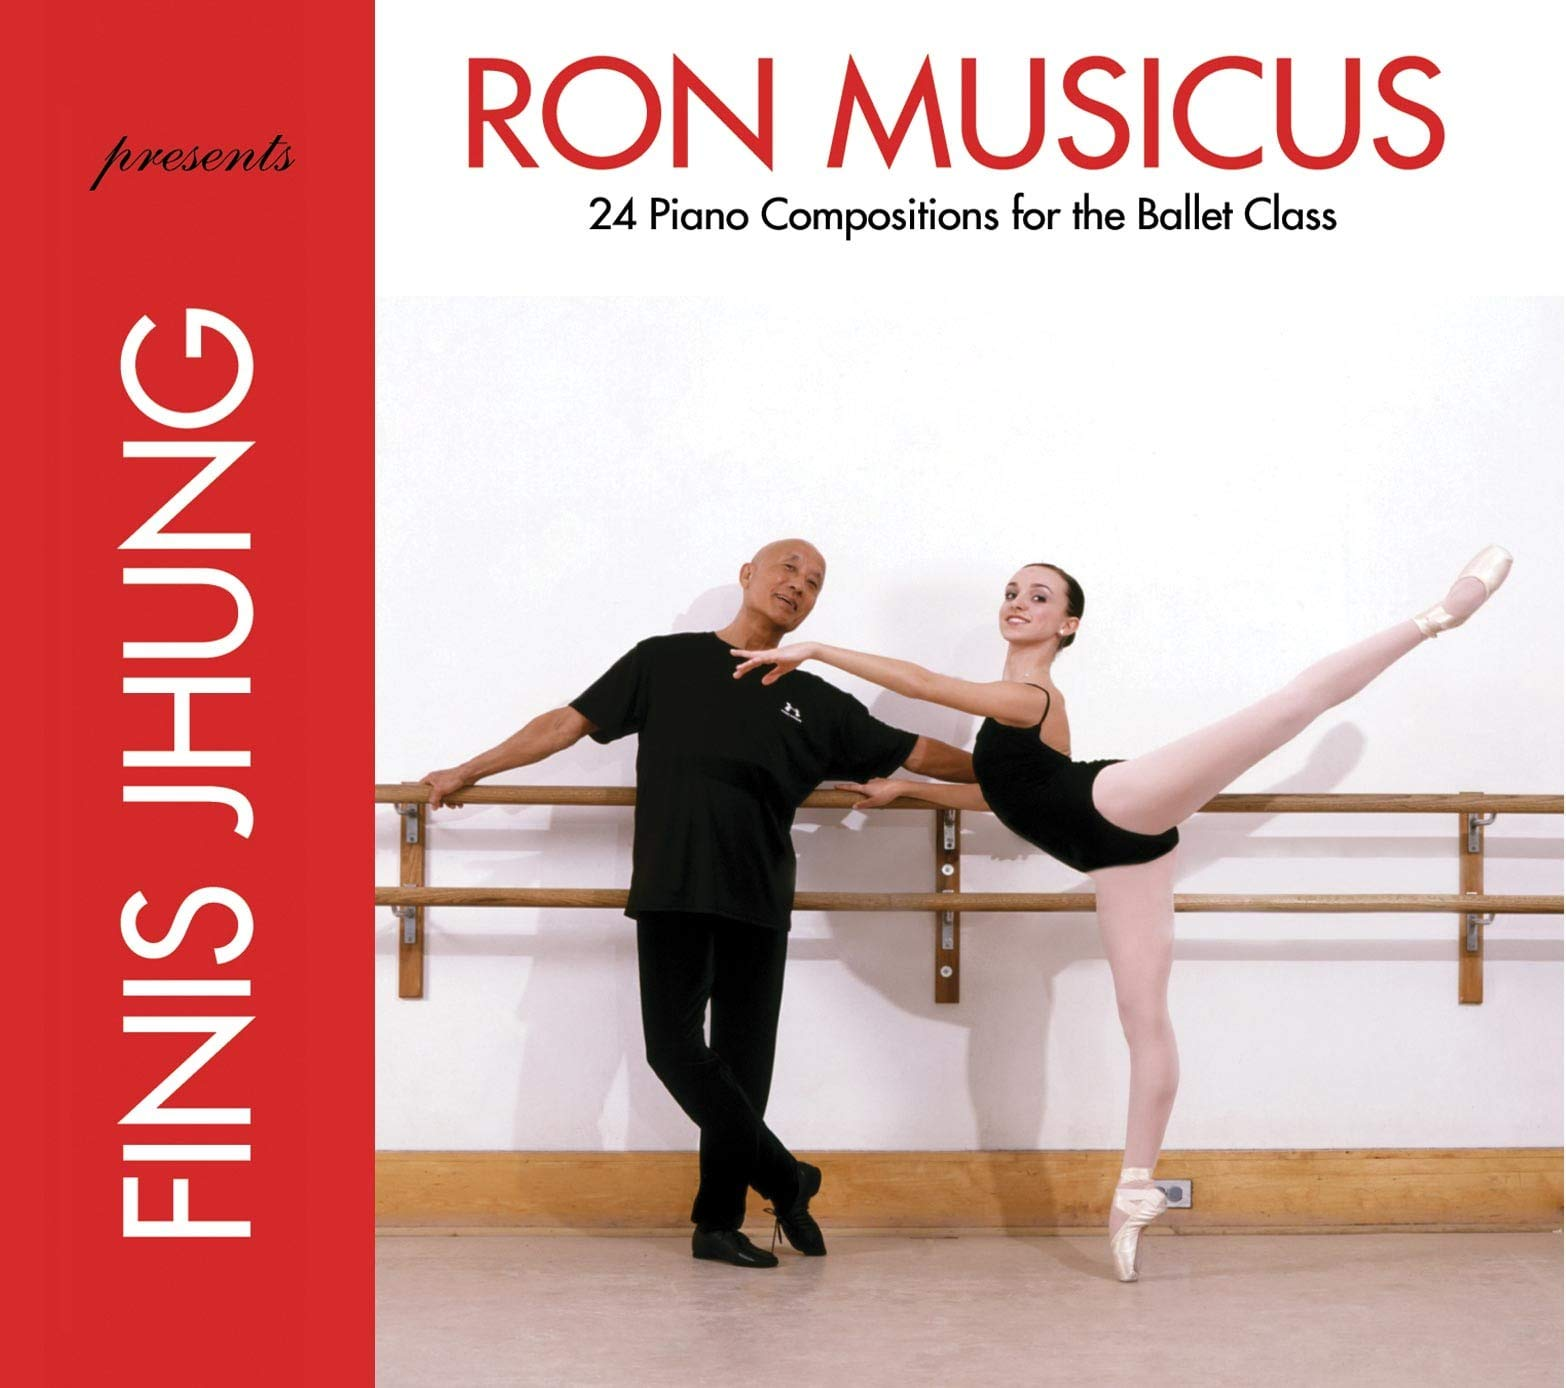 Ron Musicus: 24 Piano Compositions for the Ballet Class by